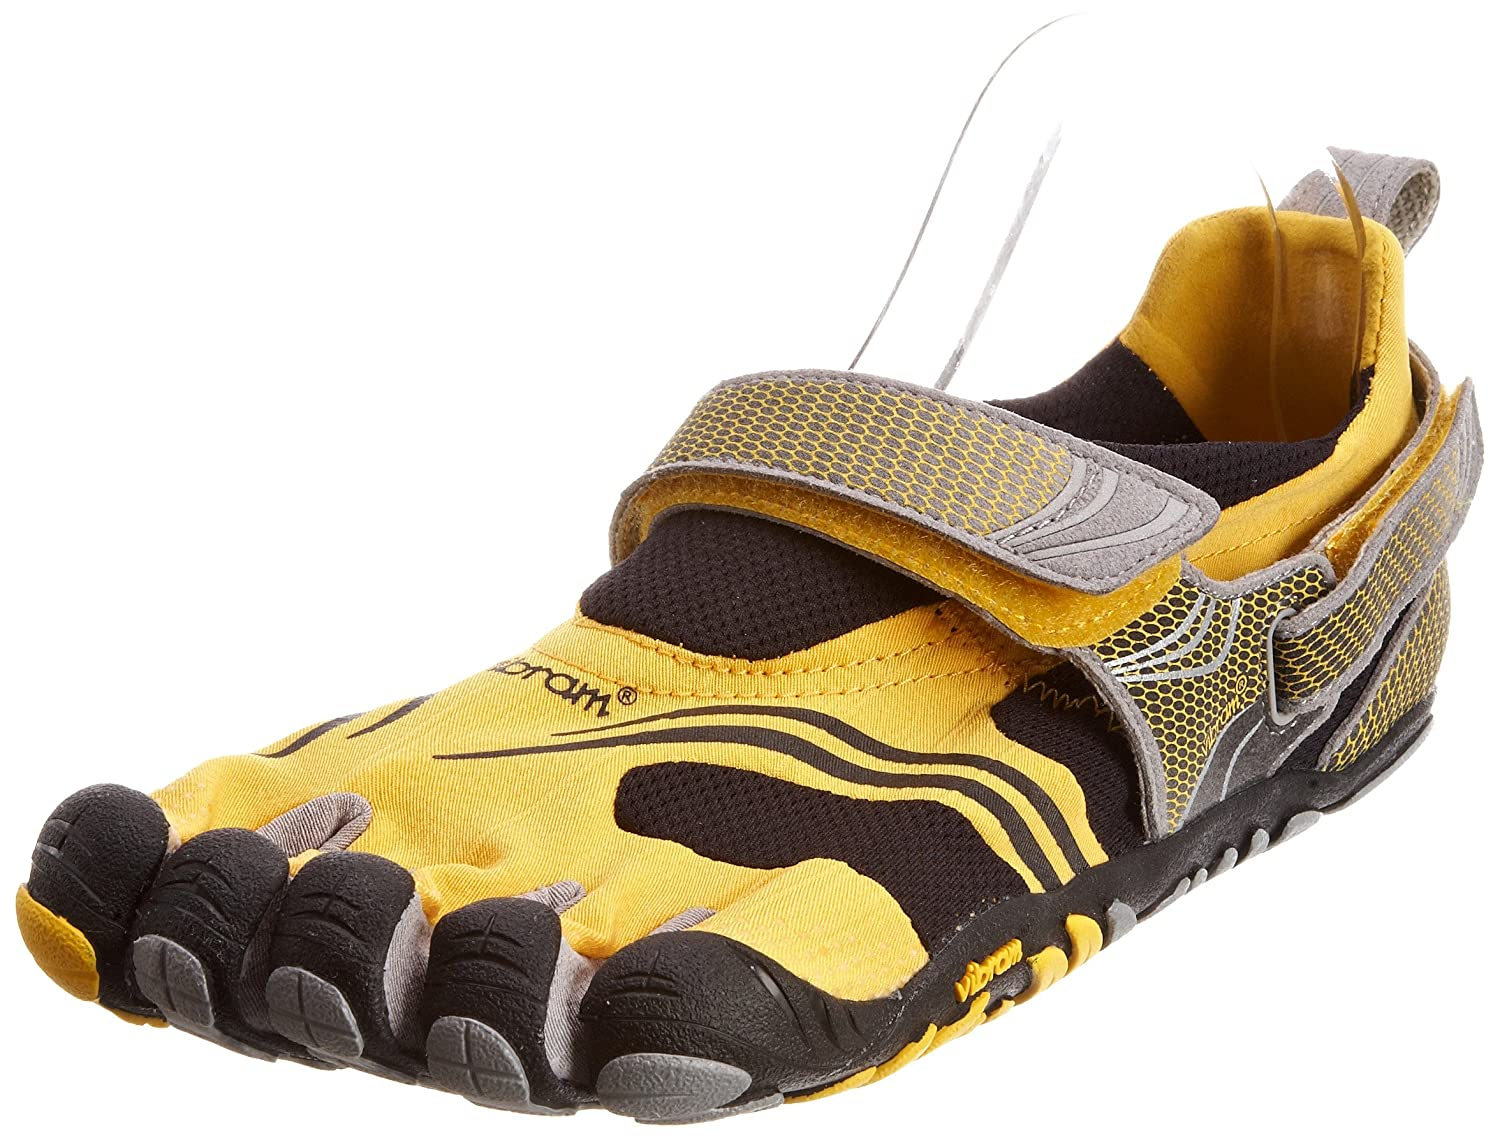 finest selection 23c46 487b8 Vibram FiveFingers Men s 5F M3648YW Fitness Shoes Yellow Size  13   Amazon.co.uk  Shoes   Bags